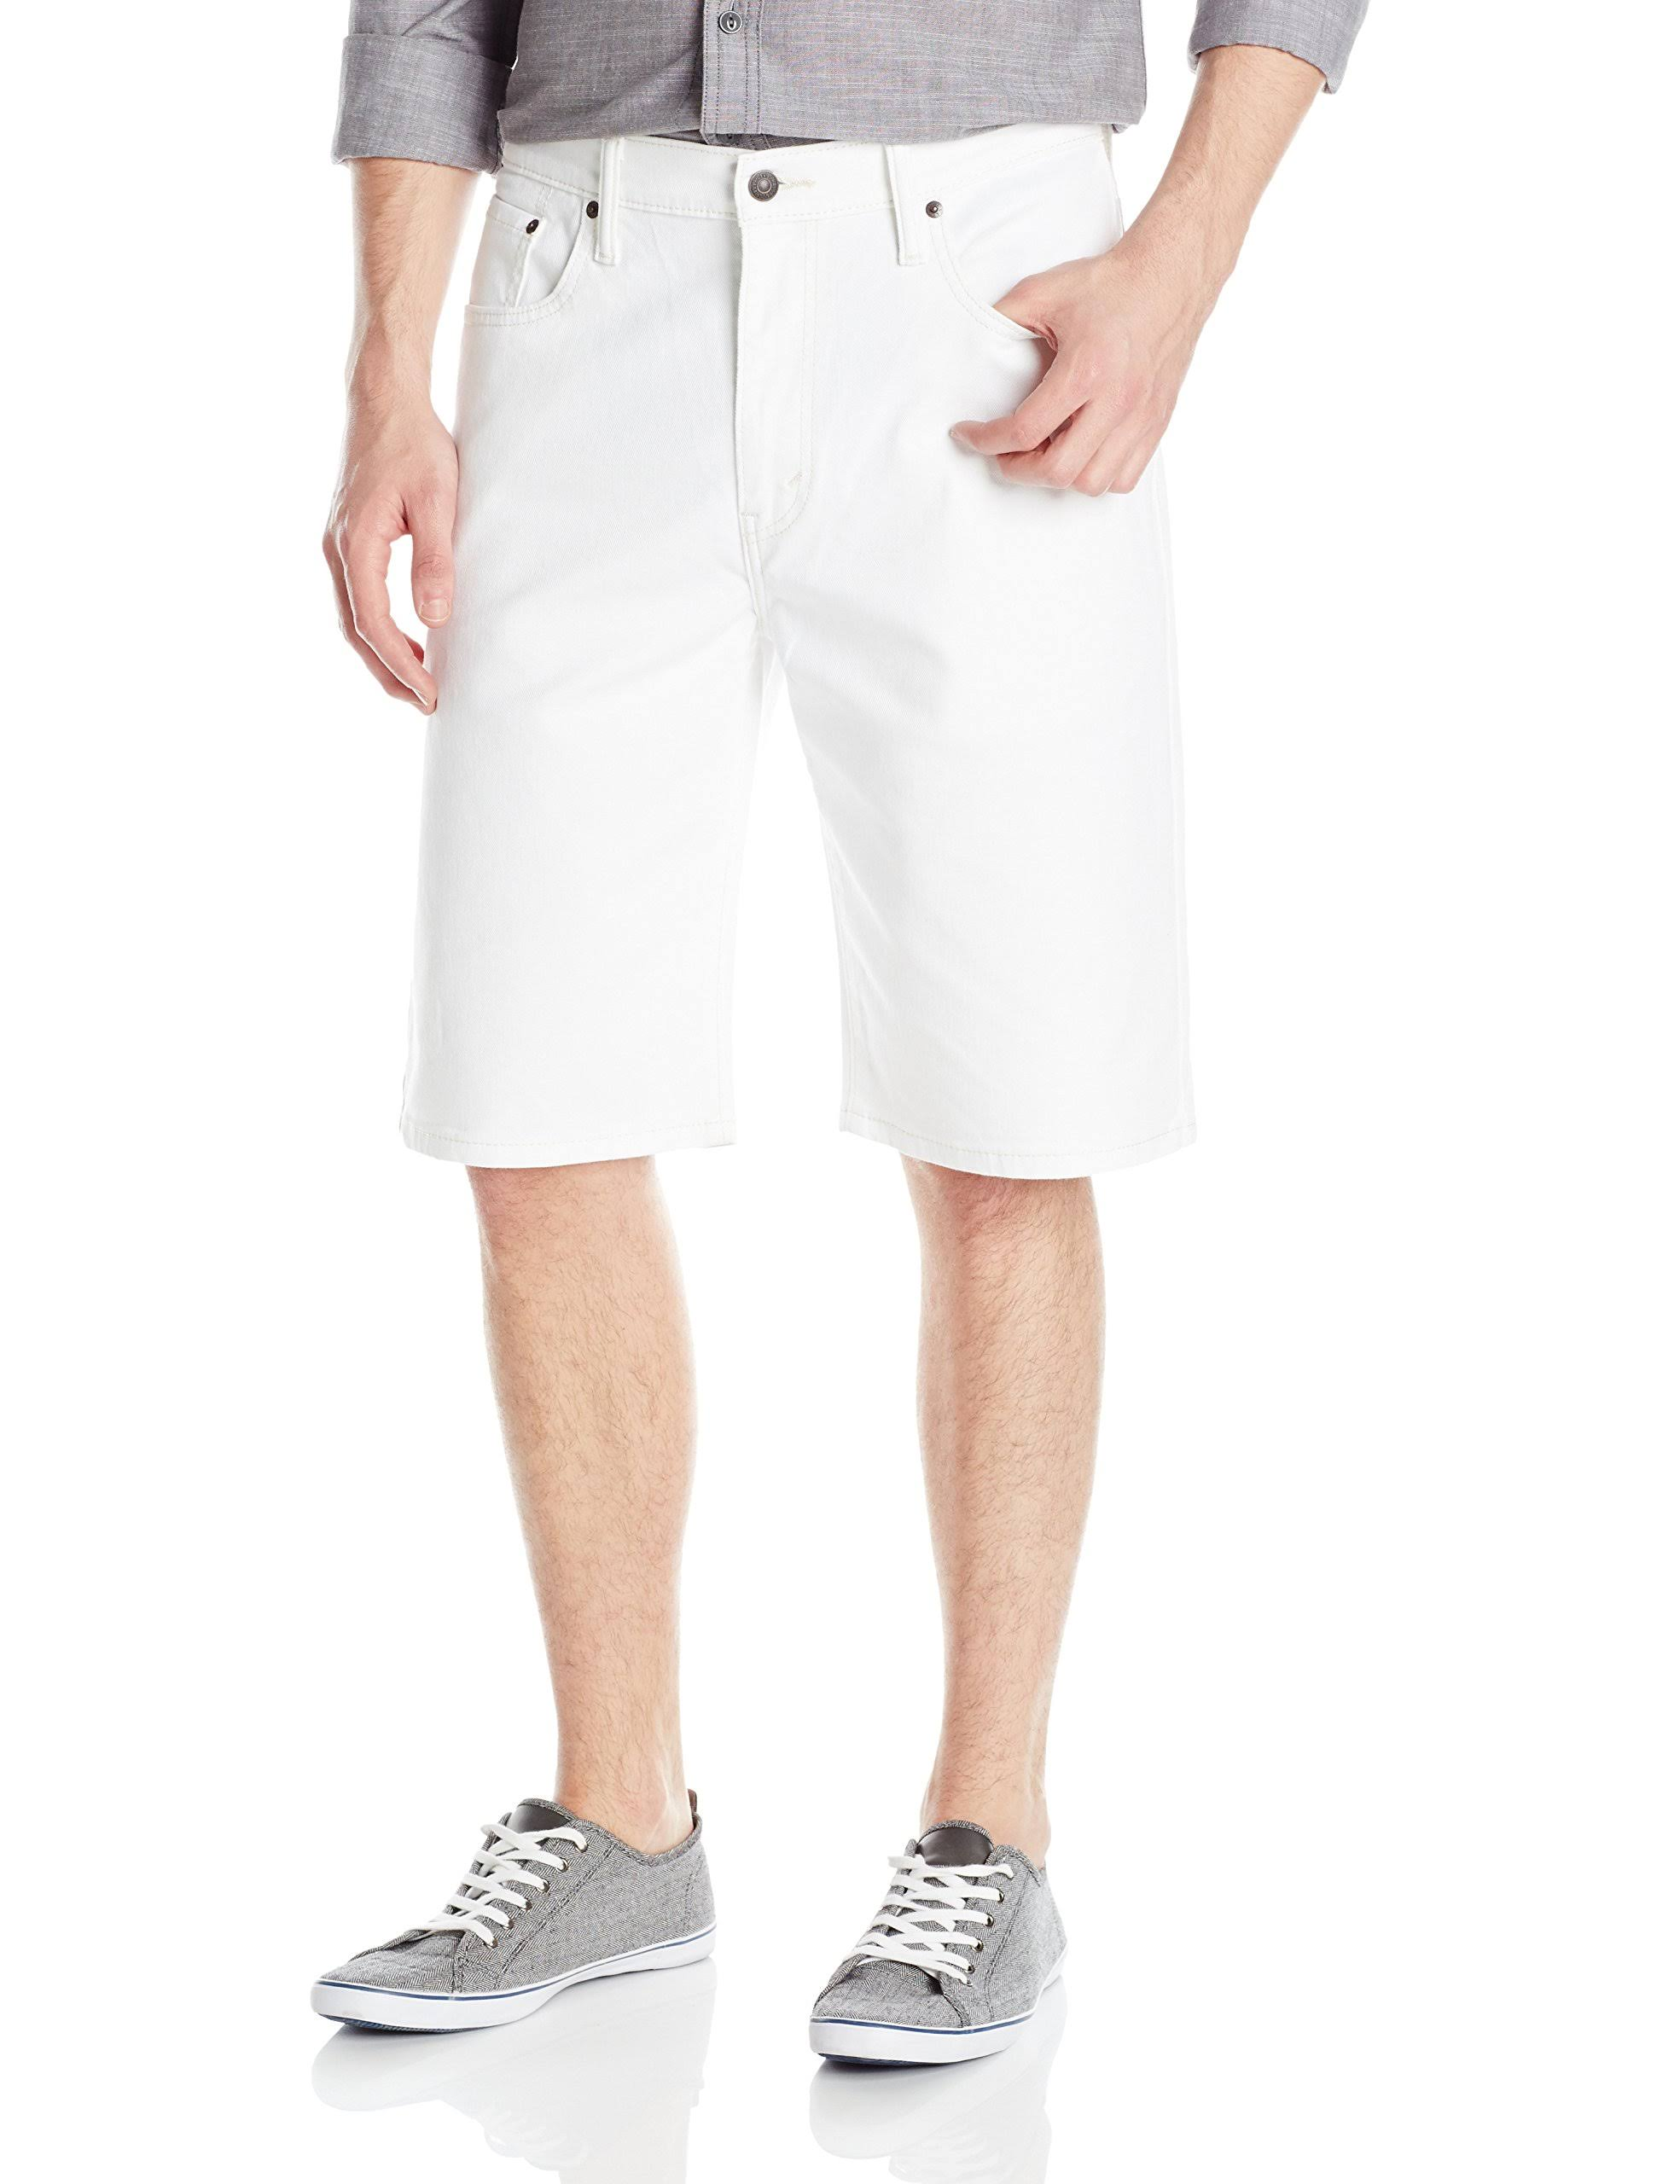 Levi's Men's 569 Loose-Fit Shorts - White 38